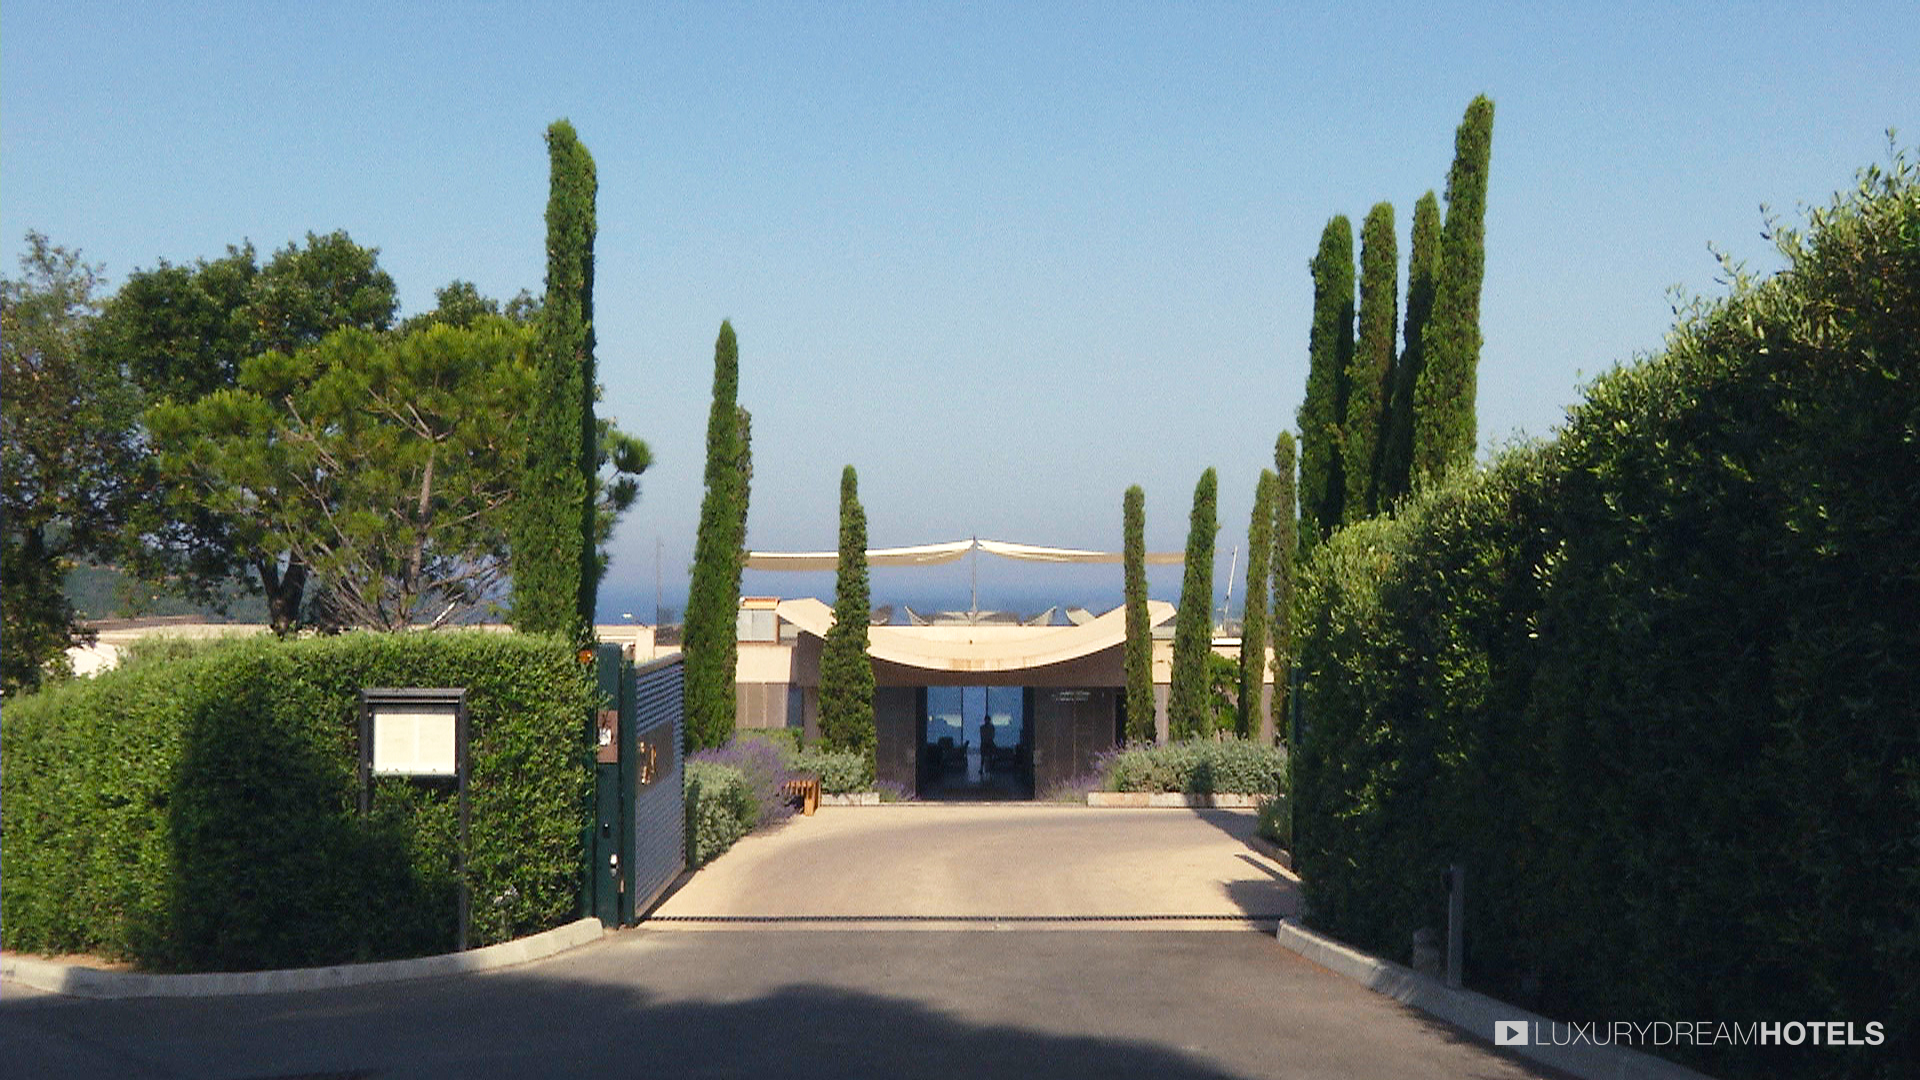 Luxury hotel La Reserve Ramatuelle Saint Tropez France Luxury